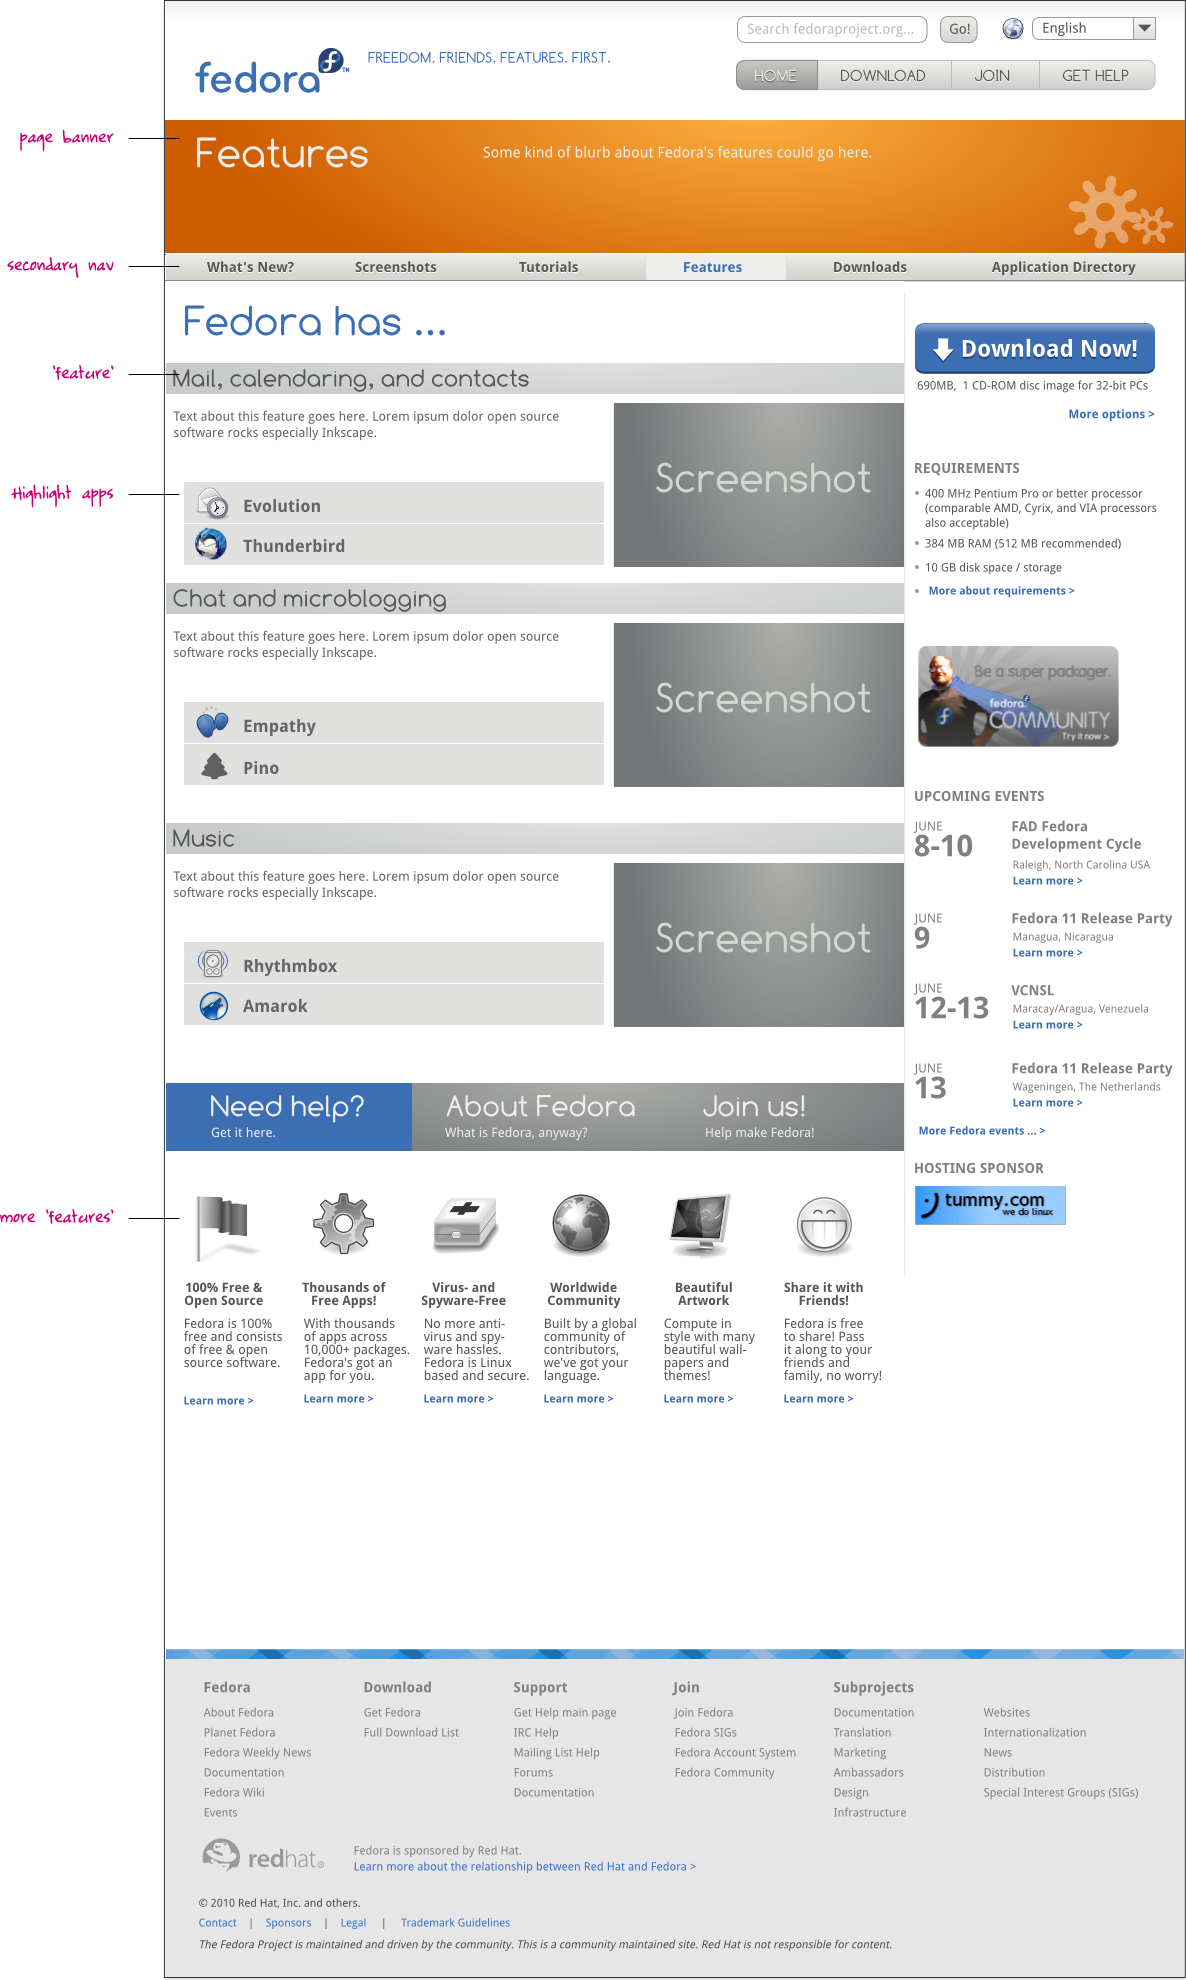 Wwwfpo-redesign-2010 2-features.png